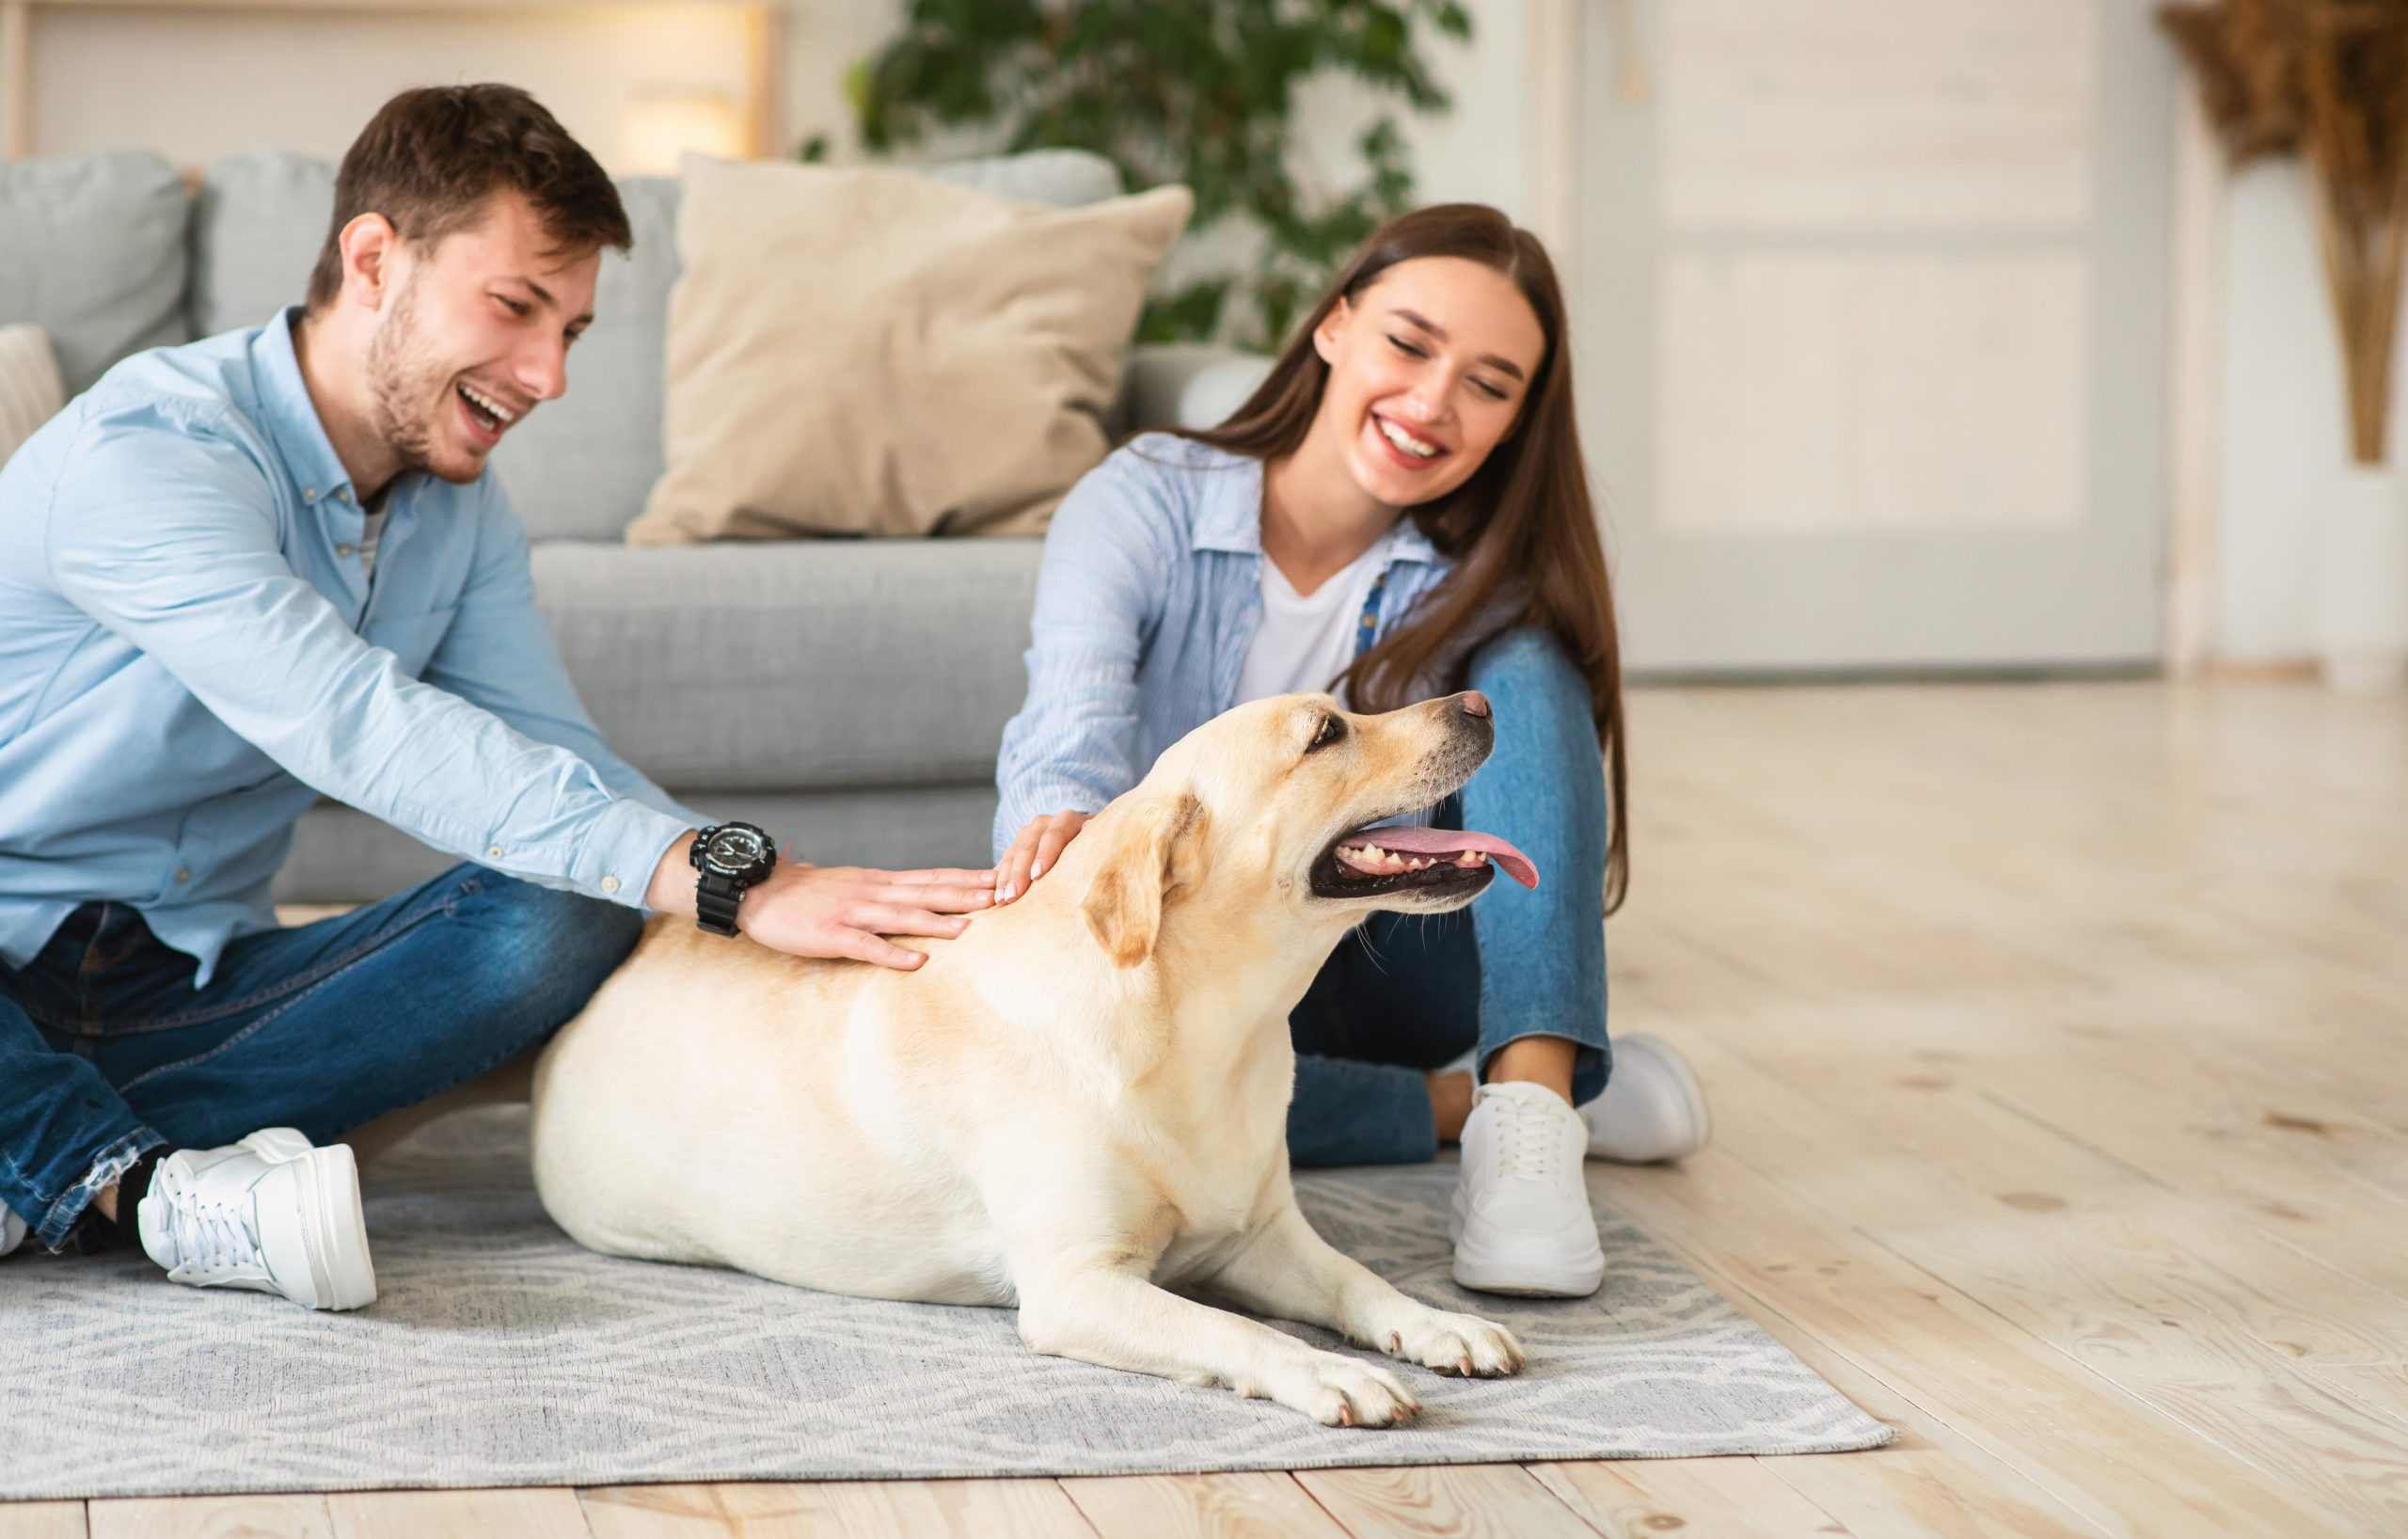 Love for Animals Concept. Beautiful woman and man sitting on the floor hugging their adorable golden retriever dog at home. Lifestyle Indoors. Copy space. Portrait of couple playing with puppy